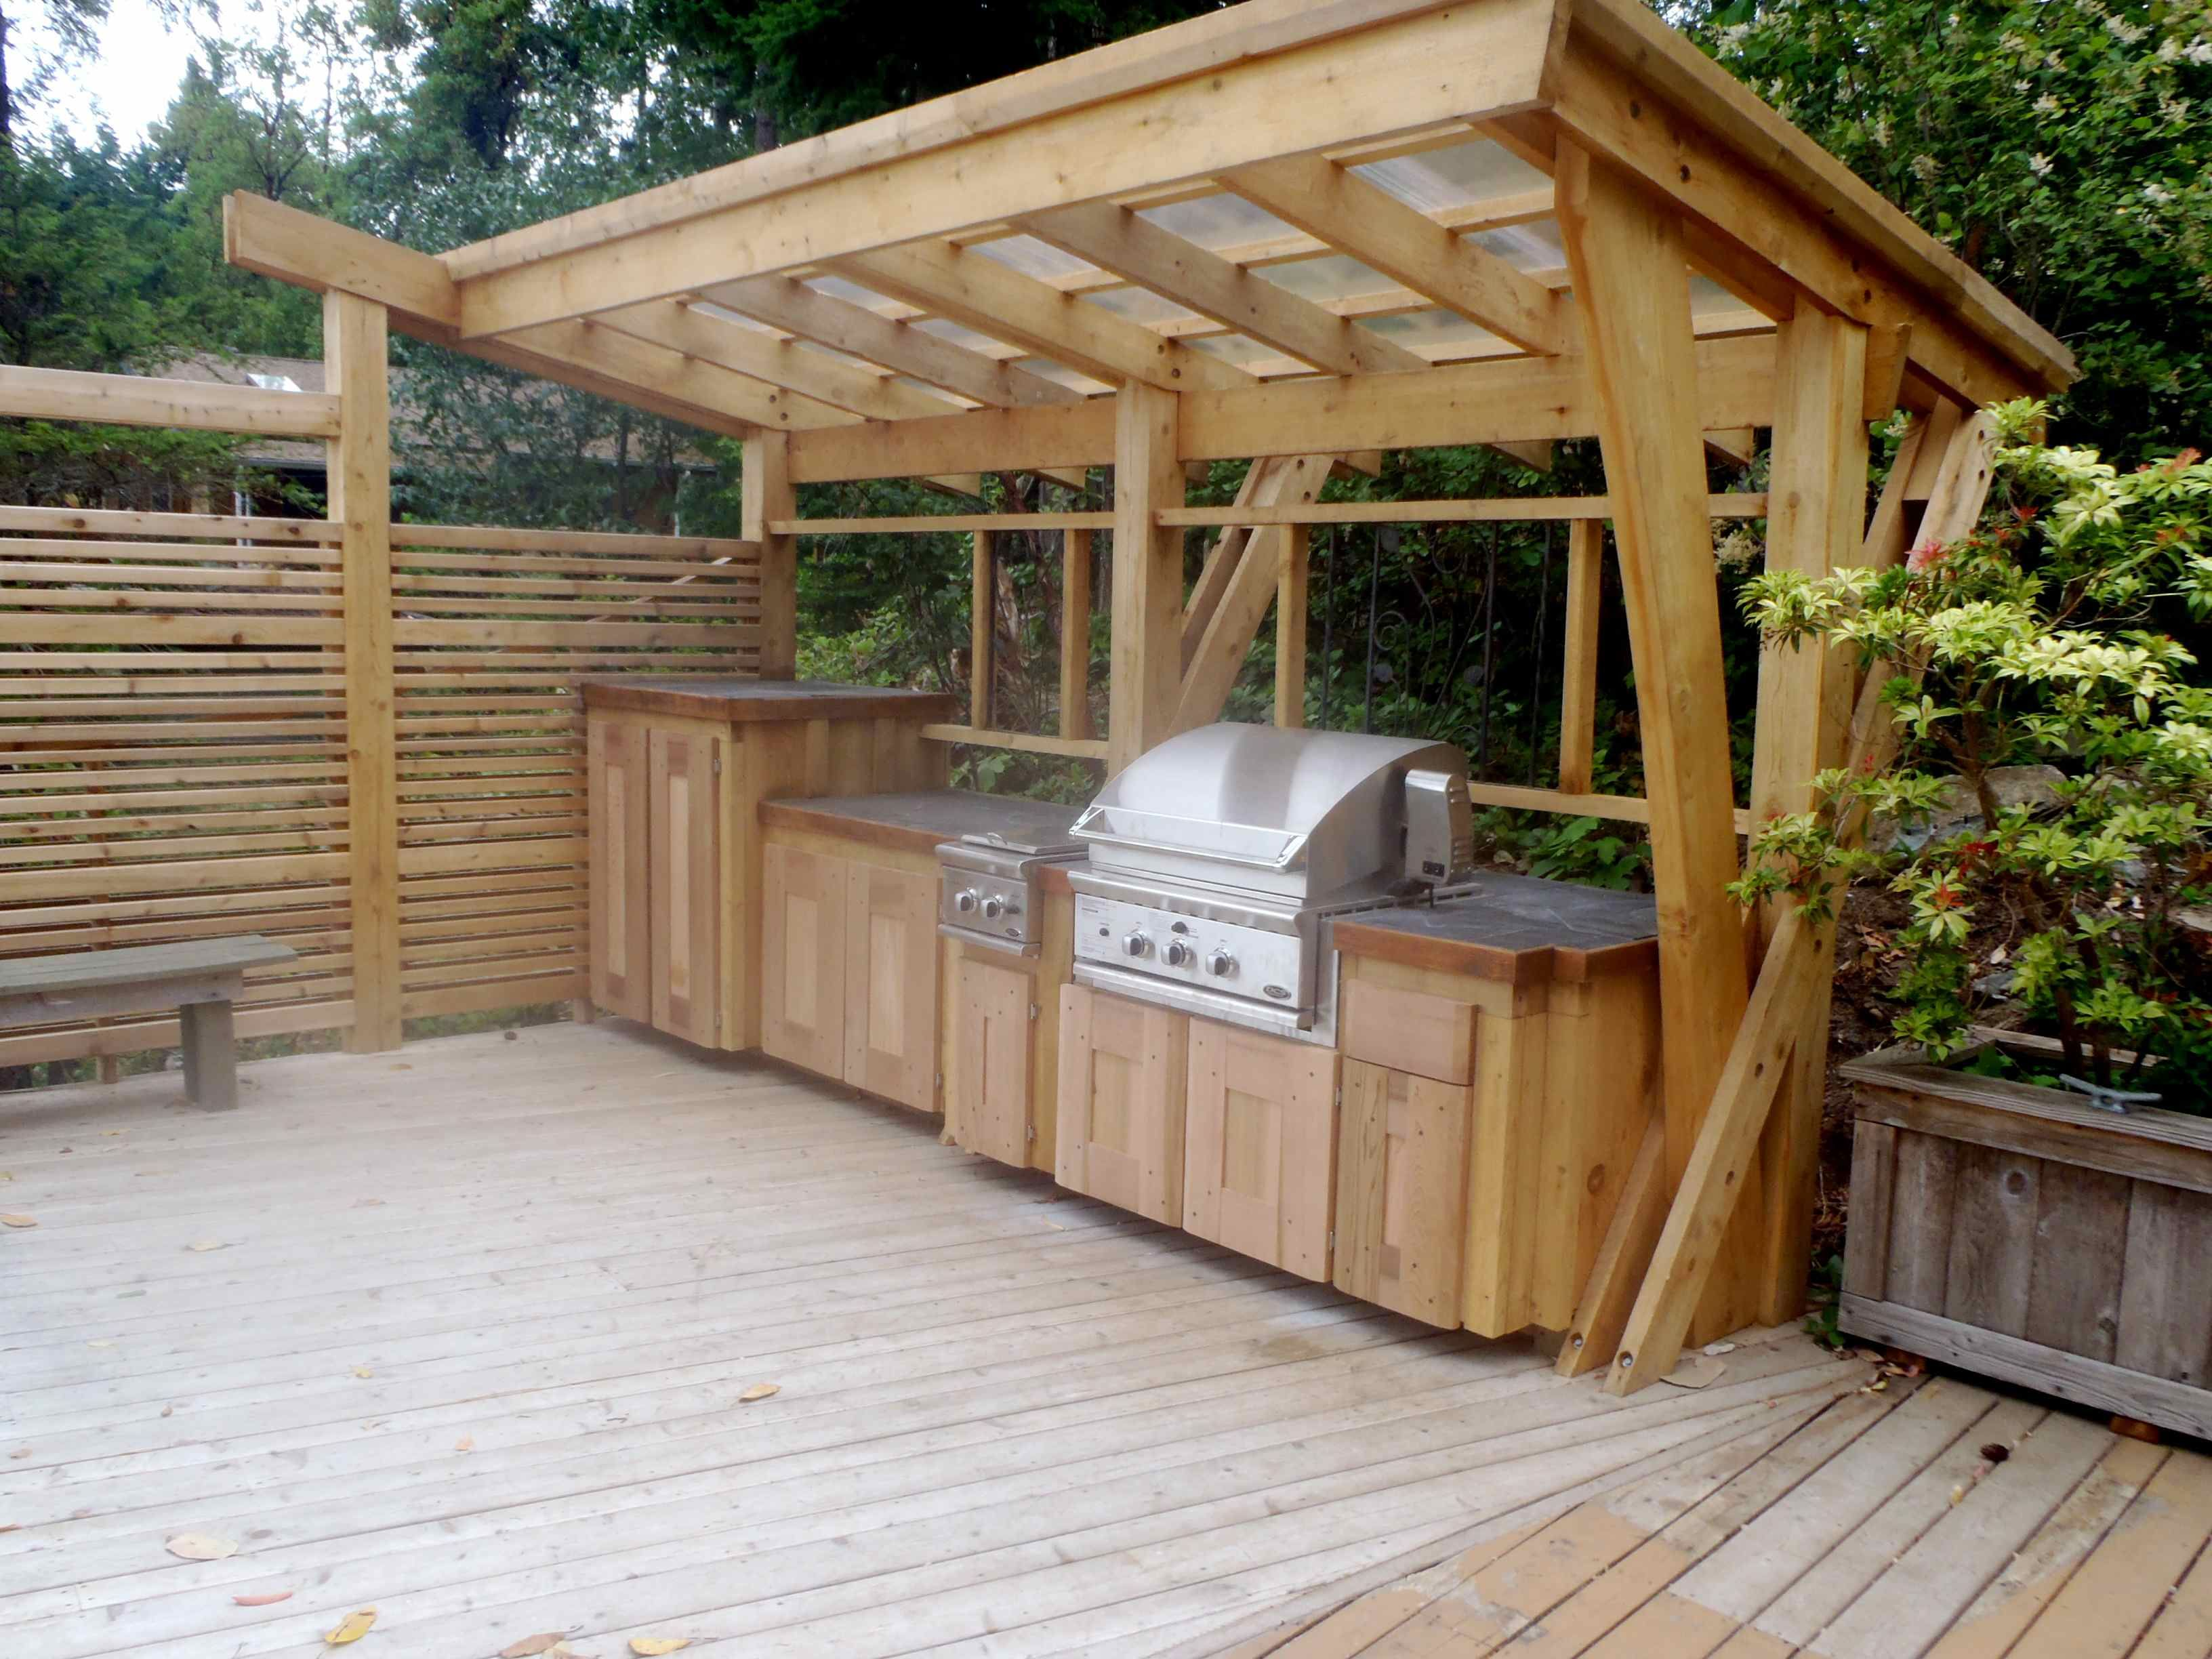 Outdoor kitchen cedar bbq cover outdoor for Small backyard outdoor kitchen